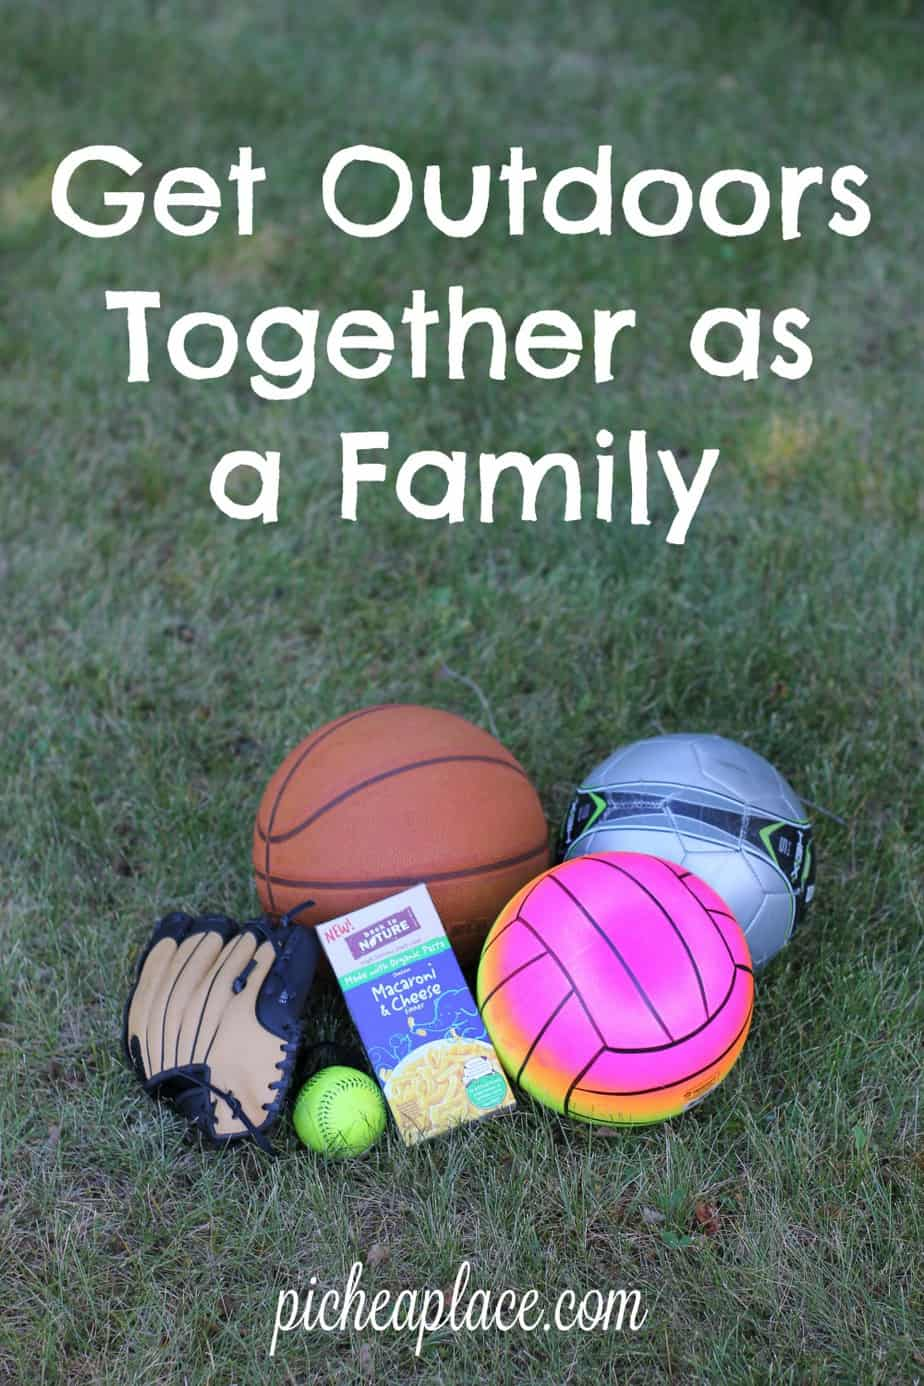 We always enjoy spending time outdoors, whether we're active or just relaxing - it's a great way to get in some quality time together as a family in the midst of a busy season of life. | Get Outdoors Together as a Family